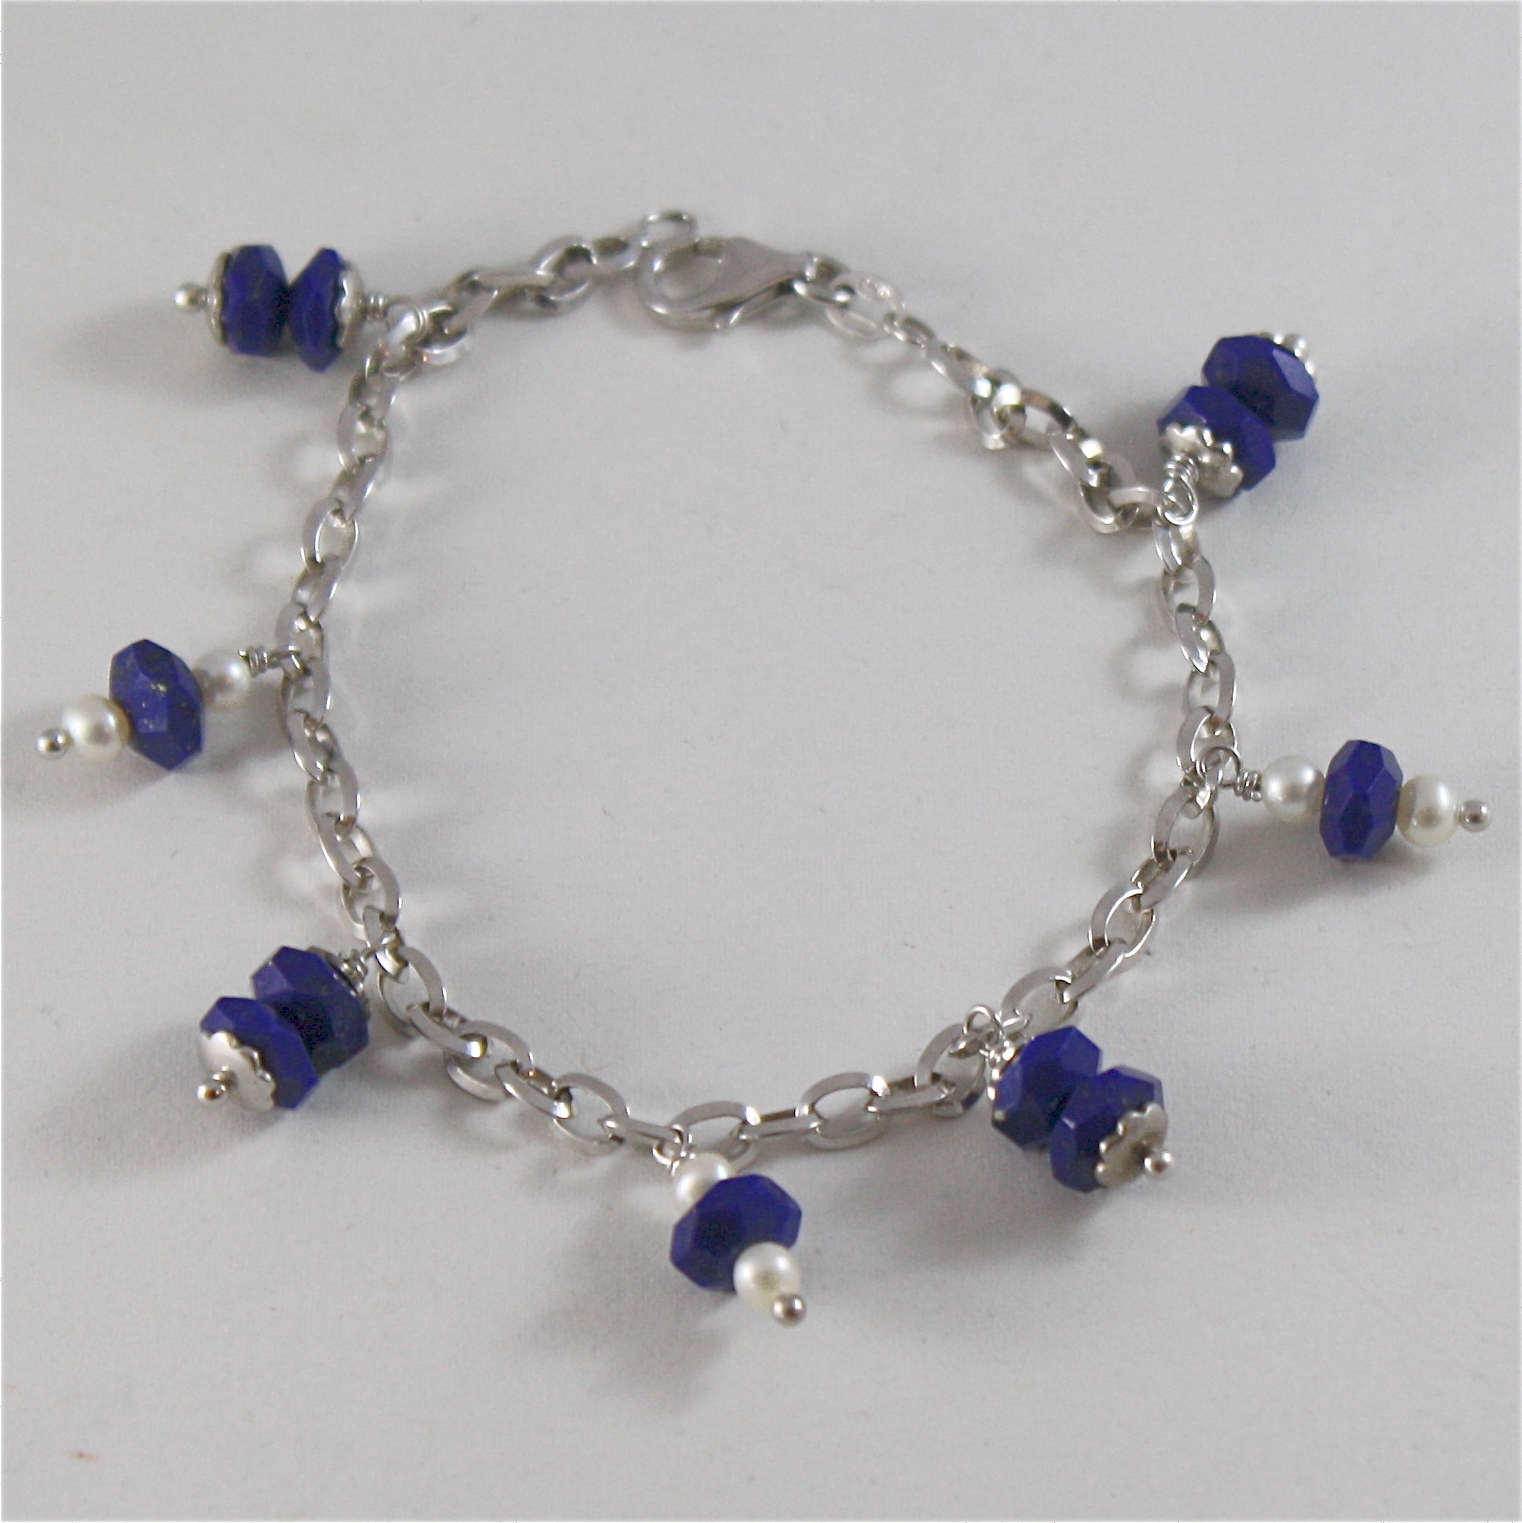 925 RODIUM SILVER BRACELET WITH NATURAL LAPIS LAZULI AND FW PEARLS MADE IN ITALY